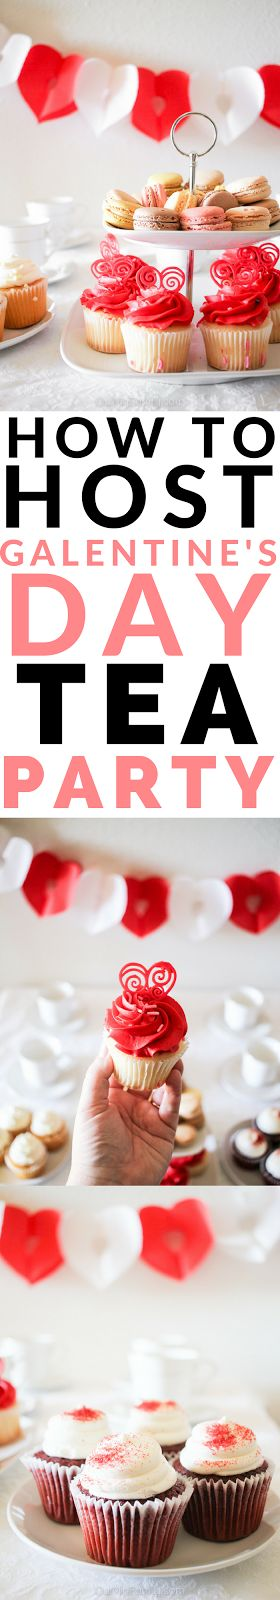 Throw a tea party for your girlfriends this Valentine's Day with style and enjoy a full-blown Galentine's Day Party with a cup of tea and some delicious sweets!